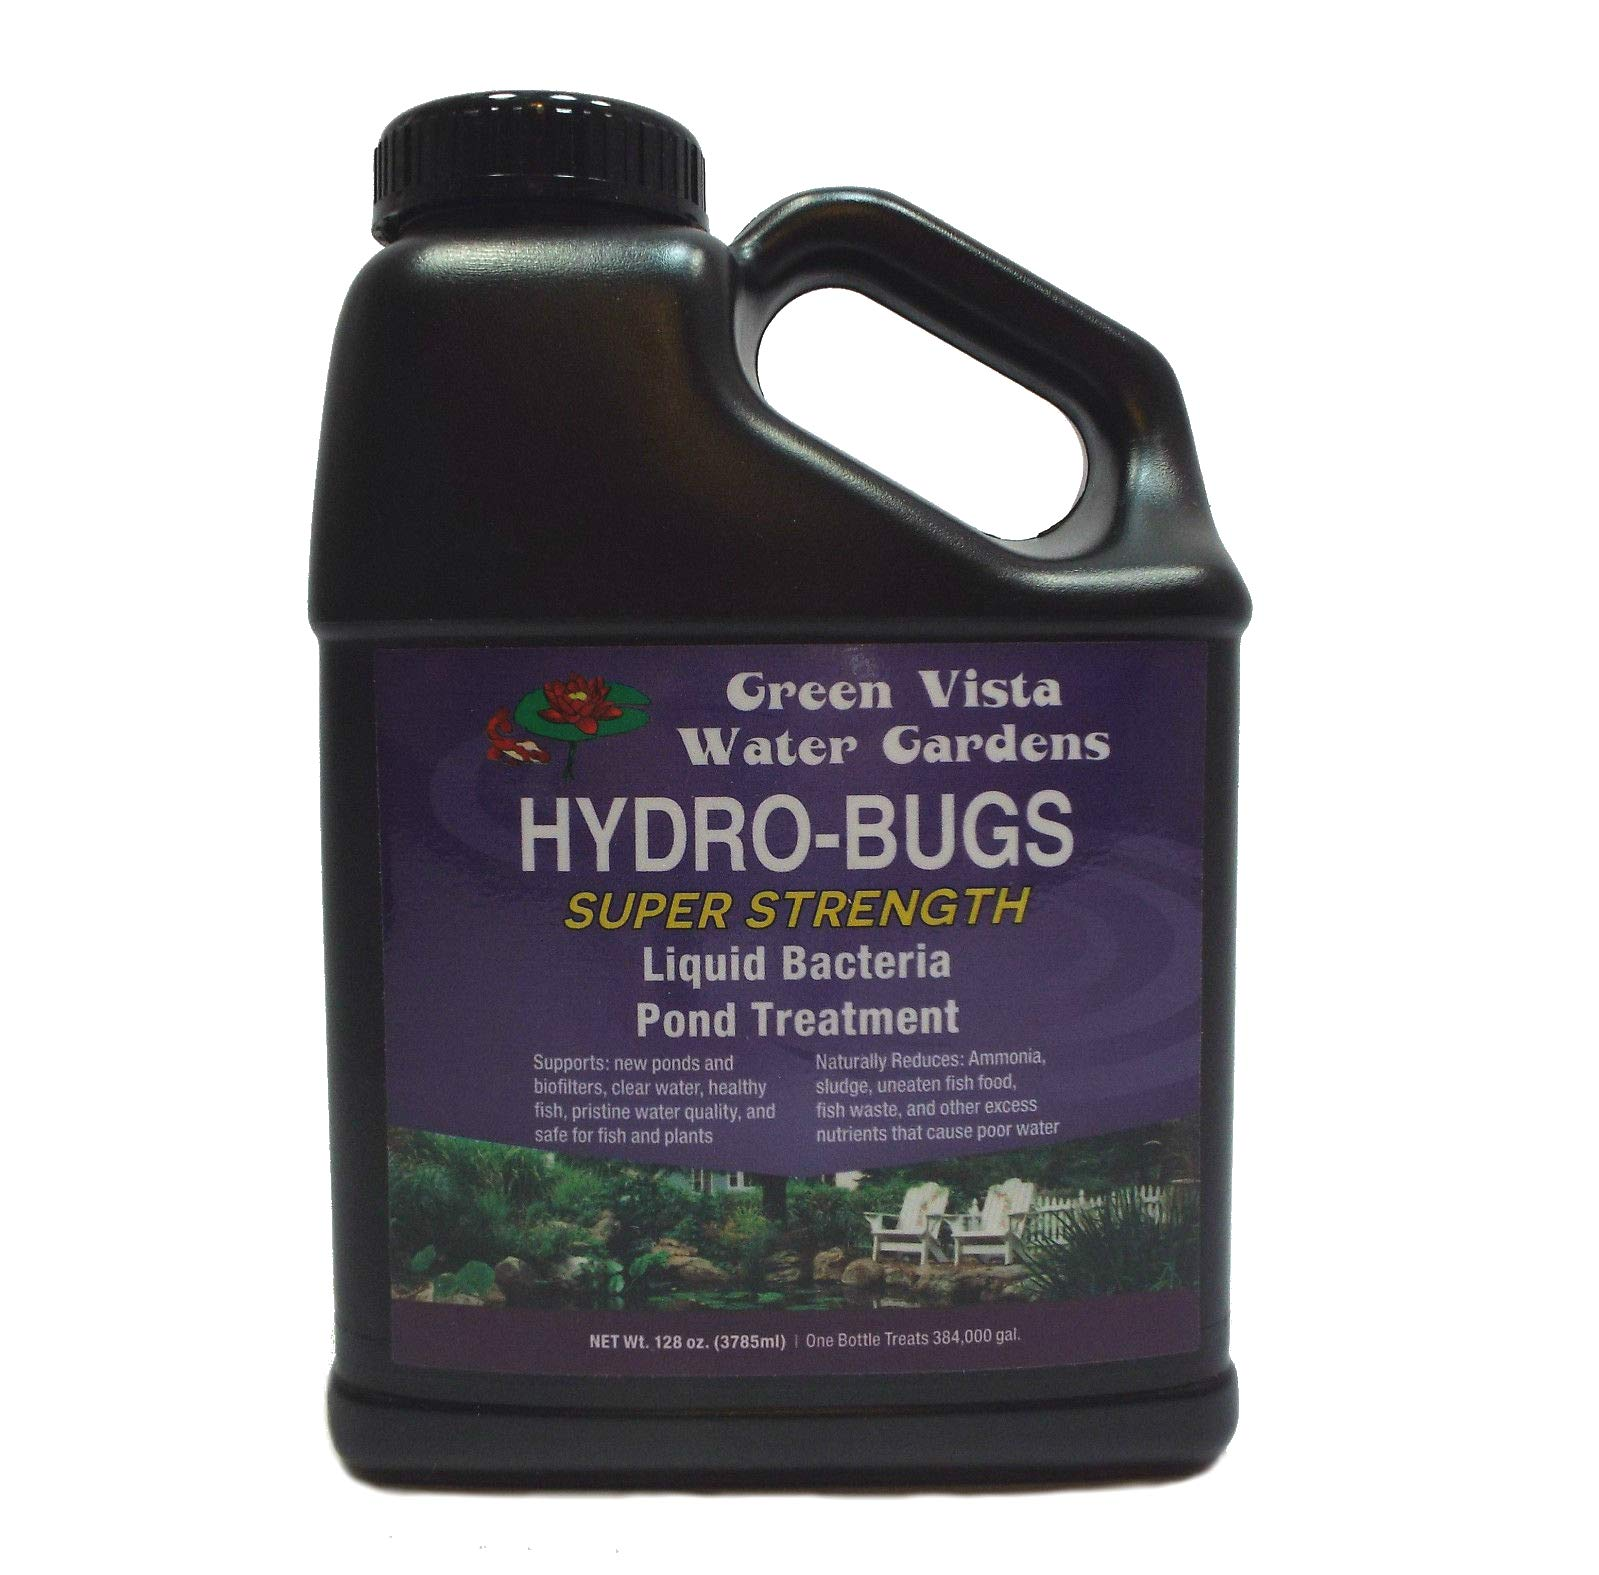 Green Vista Hydro-Bugs Liquid Beneficial Bacteria - Super Strength - 128 Ounces - Natural Probiotic Algae Control Reduces Sludge, Fish Waste, Uneaten Food - Improves Water Quality, Clarity - Fish Safe by Green Vista Water Gardens